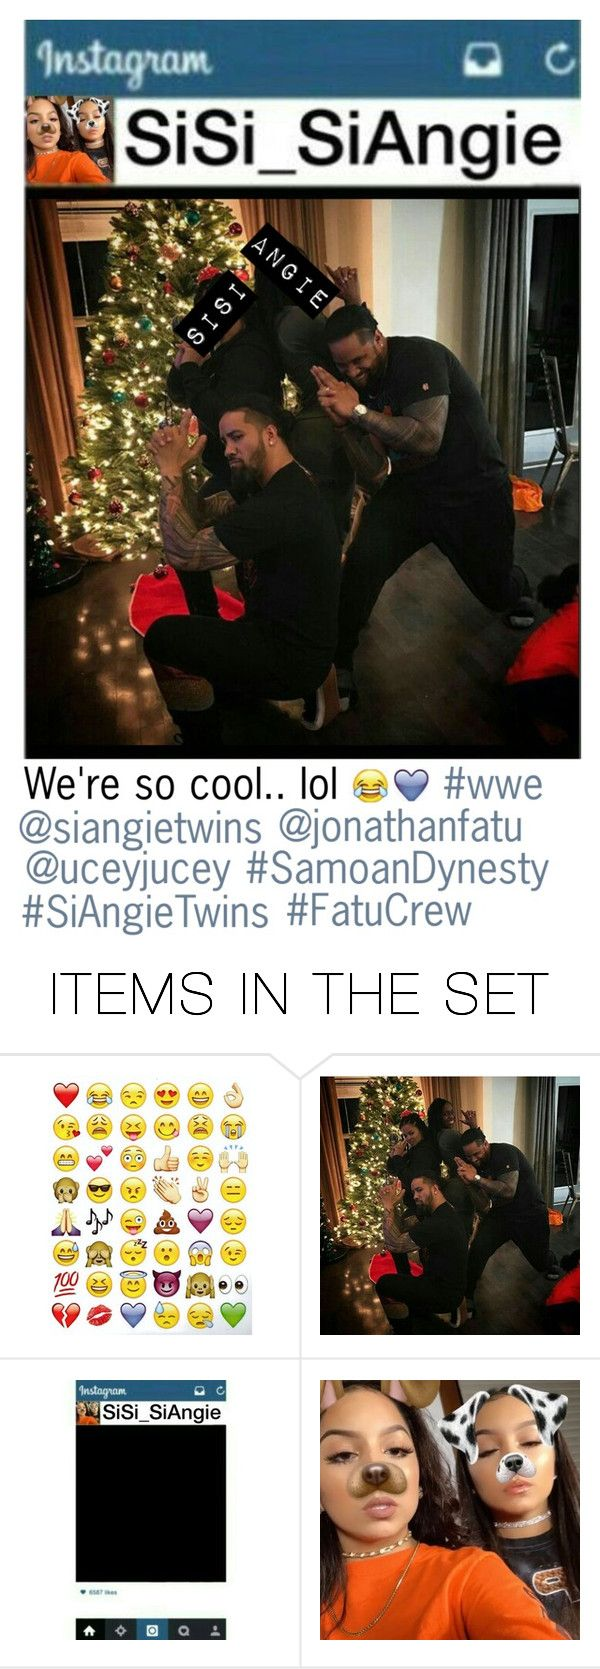 """""""(Late) Sianney holiday post on her personal IG account"""" by dani-loves-wwe-music ❤ liked on Polyvore featuring art"""